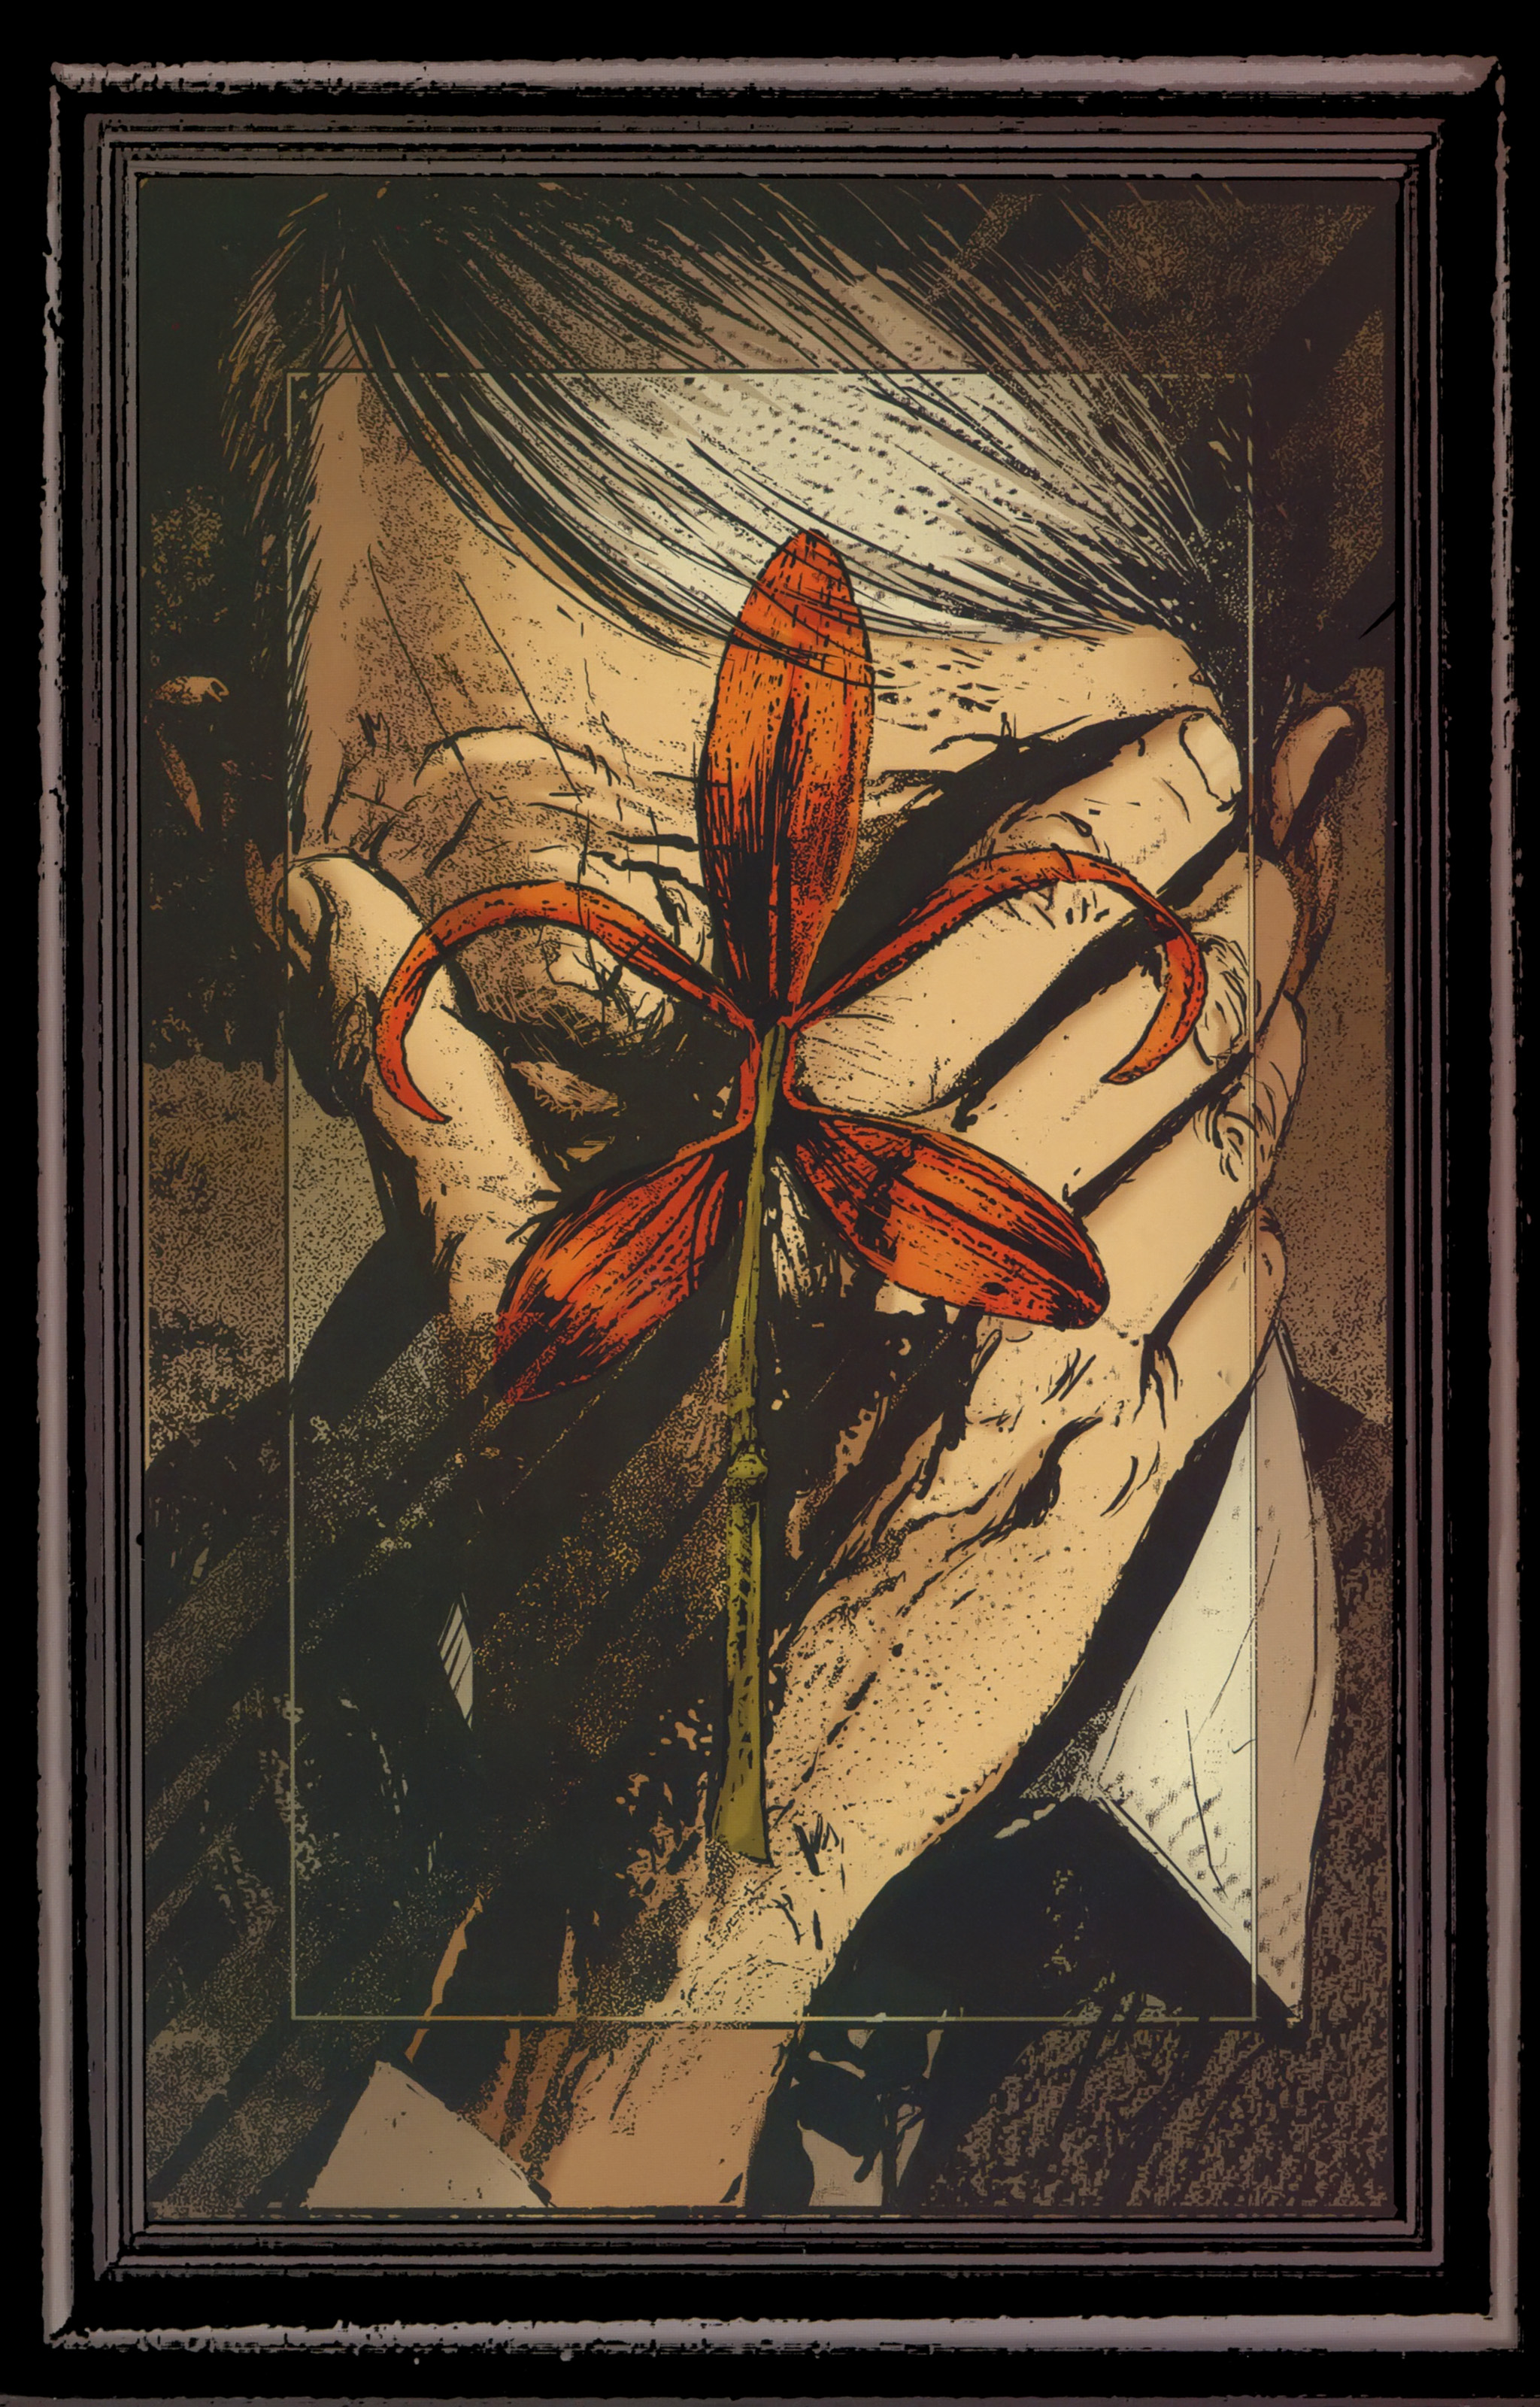 Read online The Girl With the Dragon Tattoo comic -  Issue # TPB 1 - 12